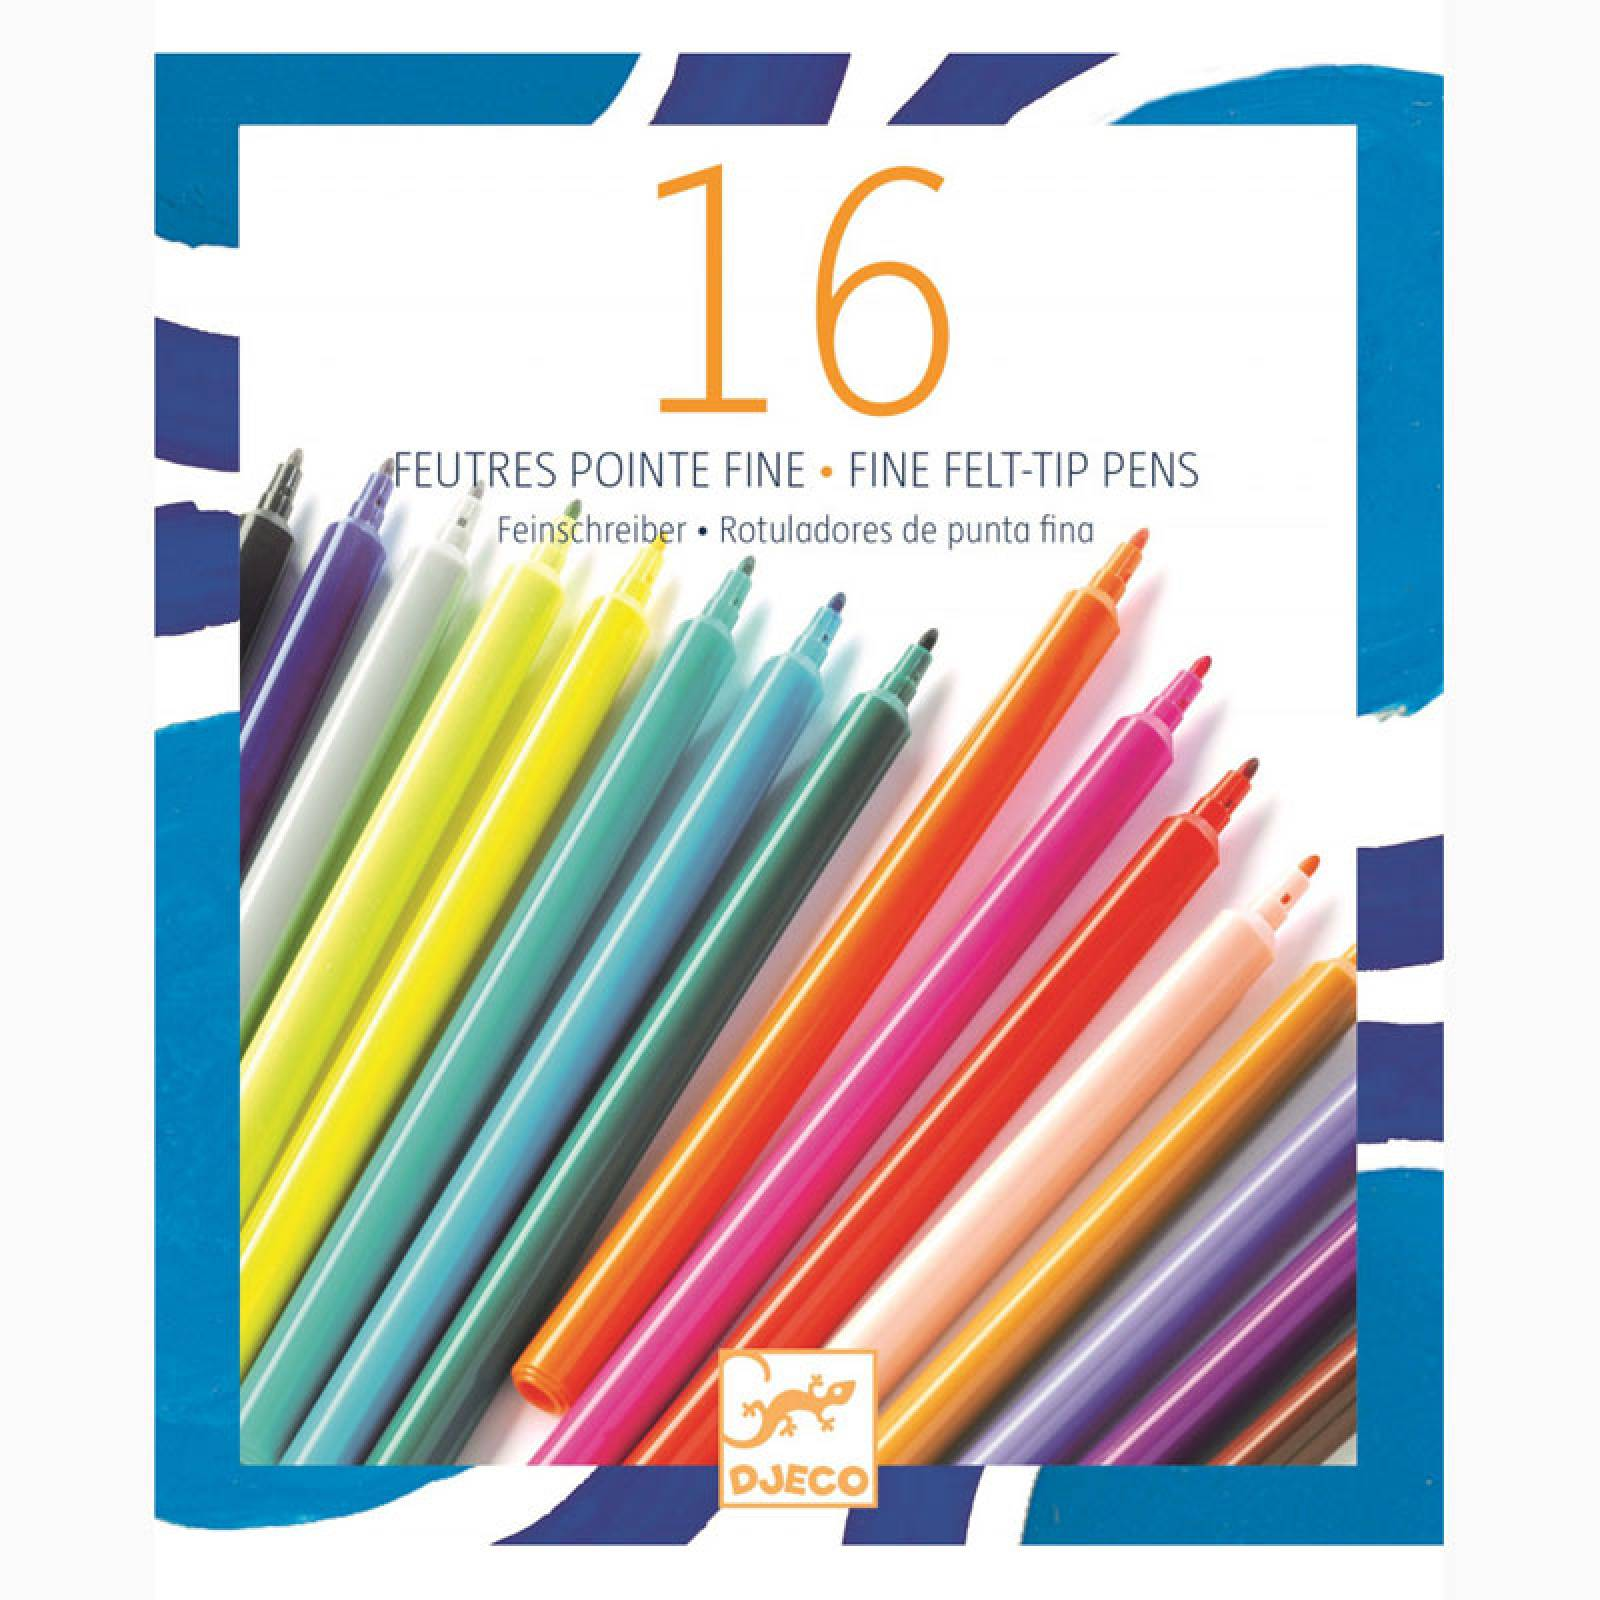 Pack Of 16 Fine Felt Tip Pens By Djeco